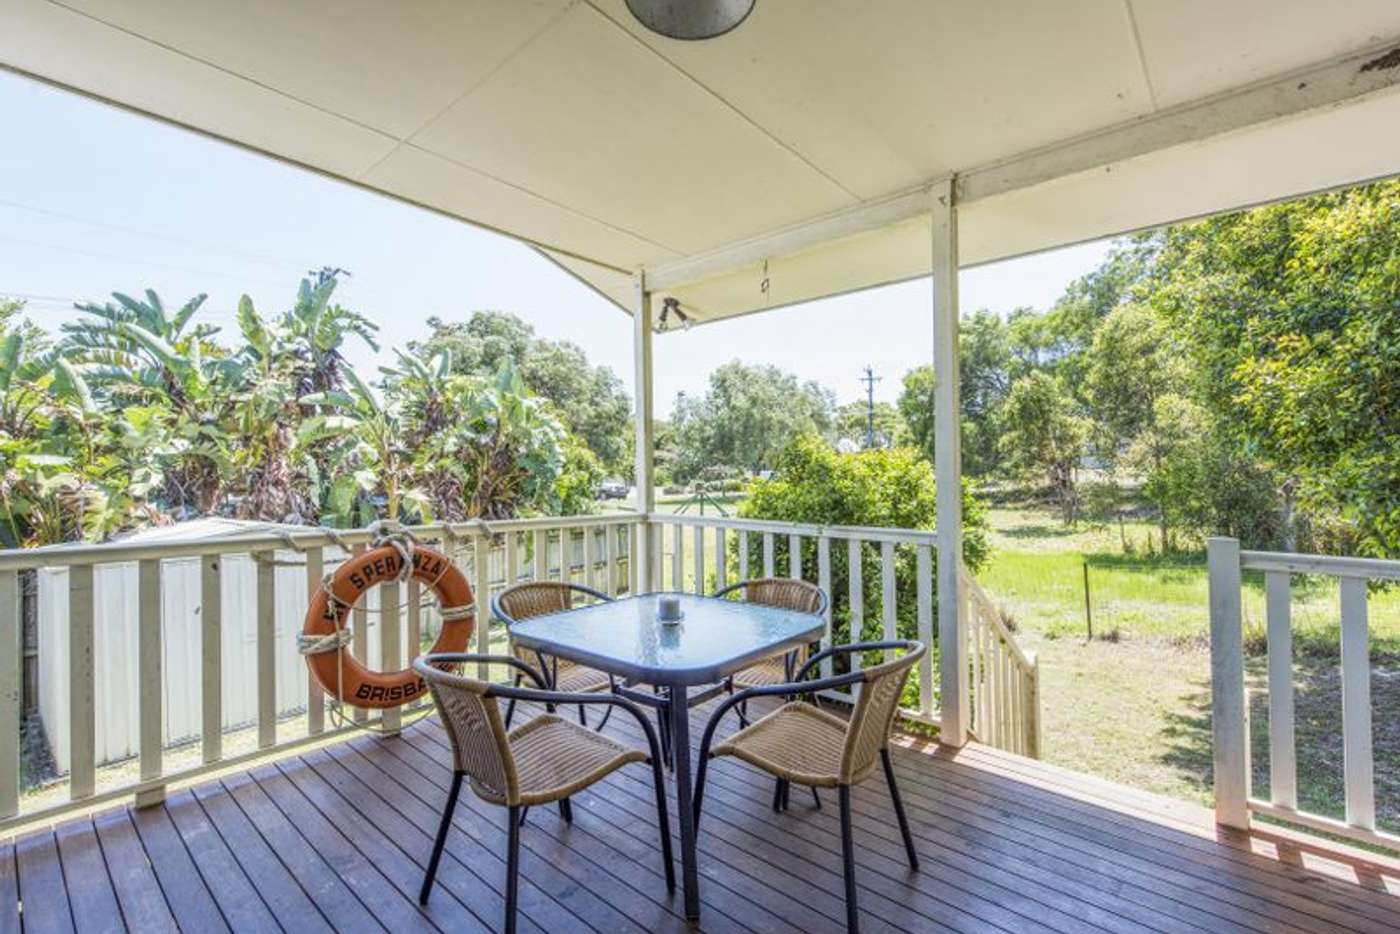 Main view of Homely house listing, 7 Charles Lane, Iluka NSW 2466